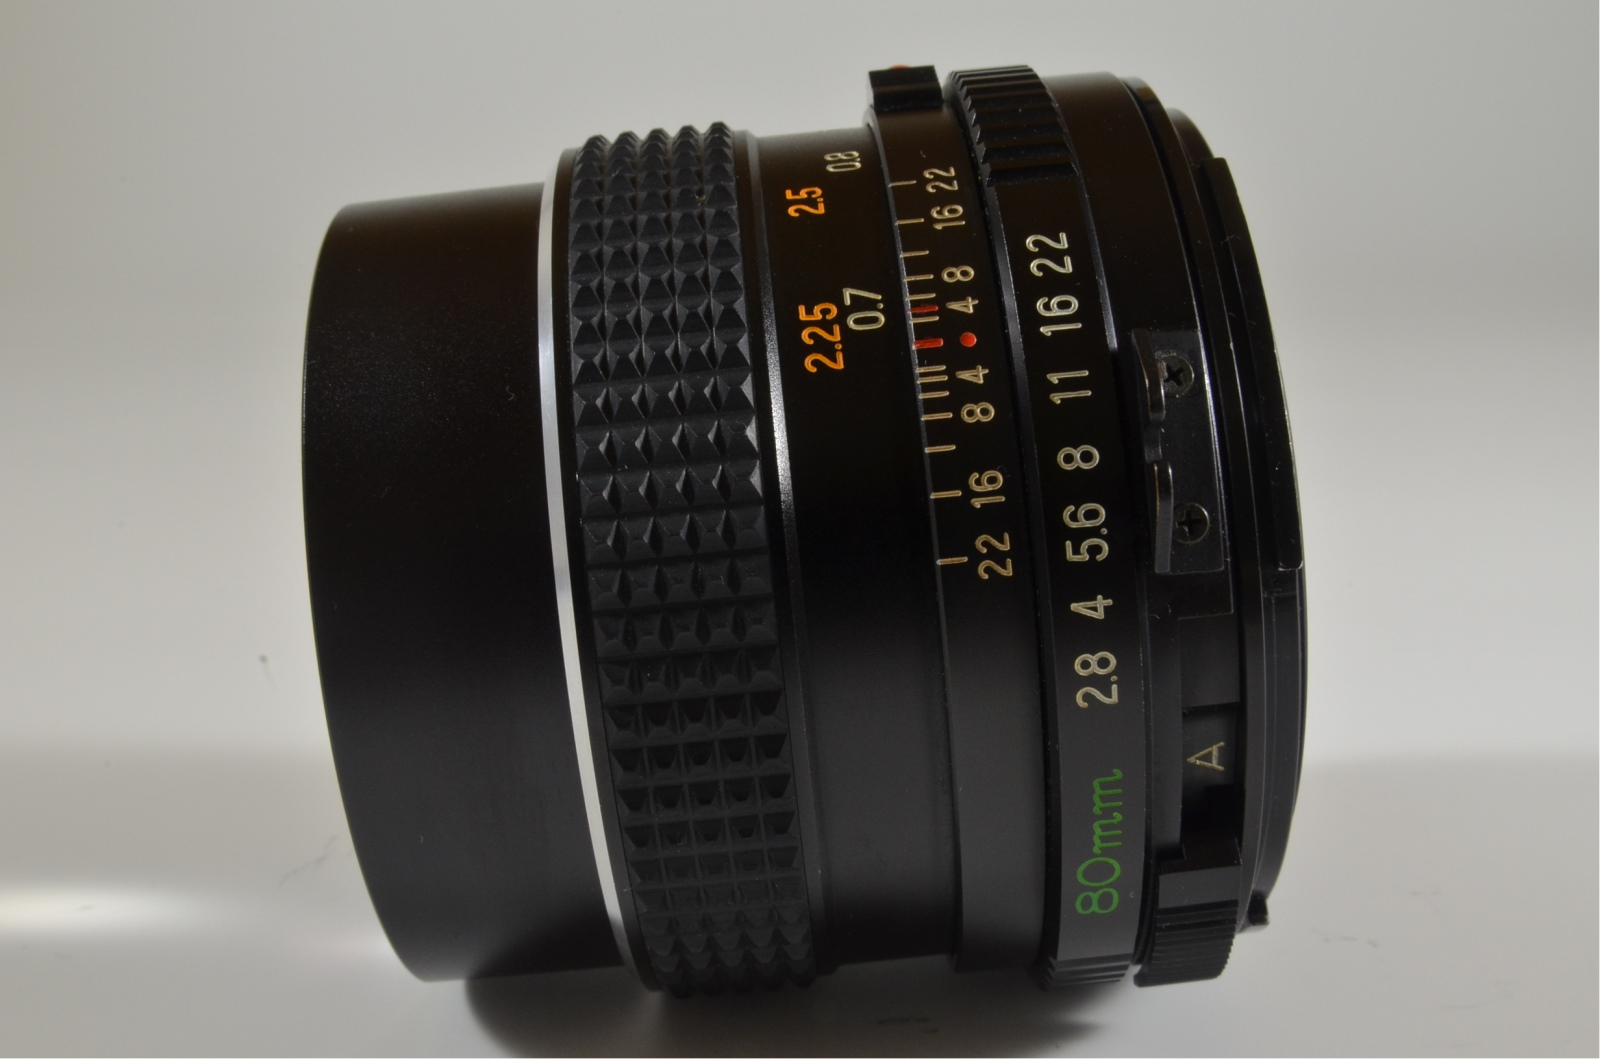 mamiya m645 medium format camera 80mm f2.8 c waist level finder